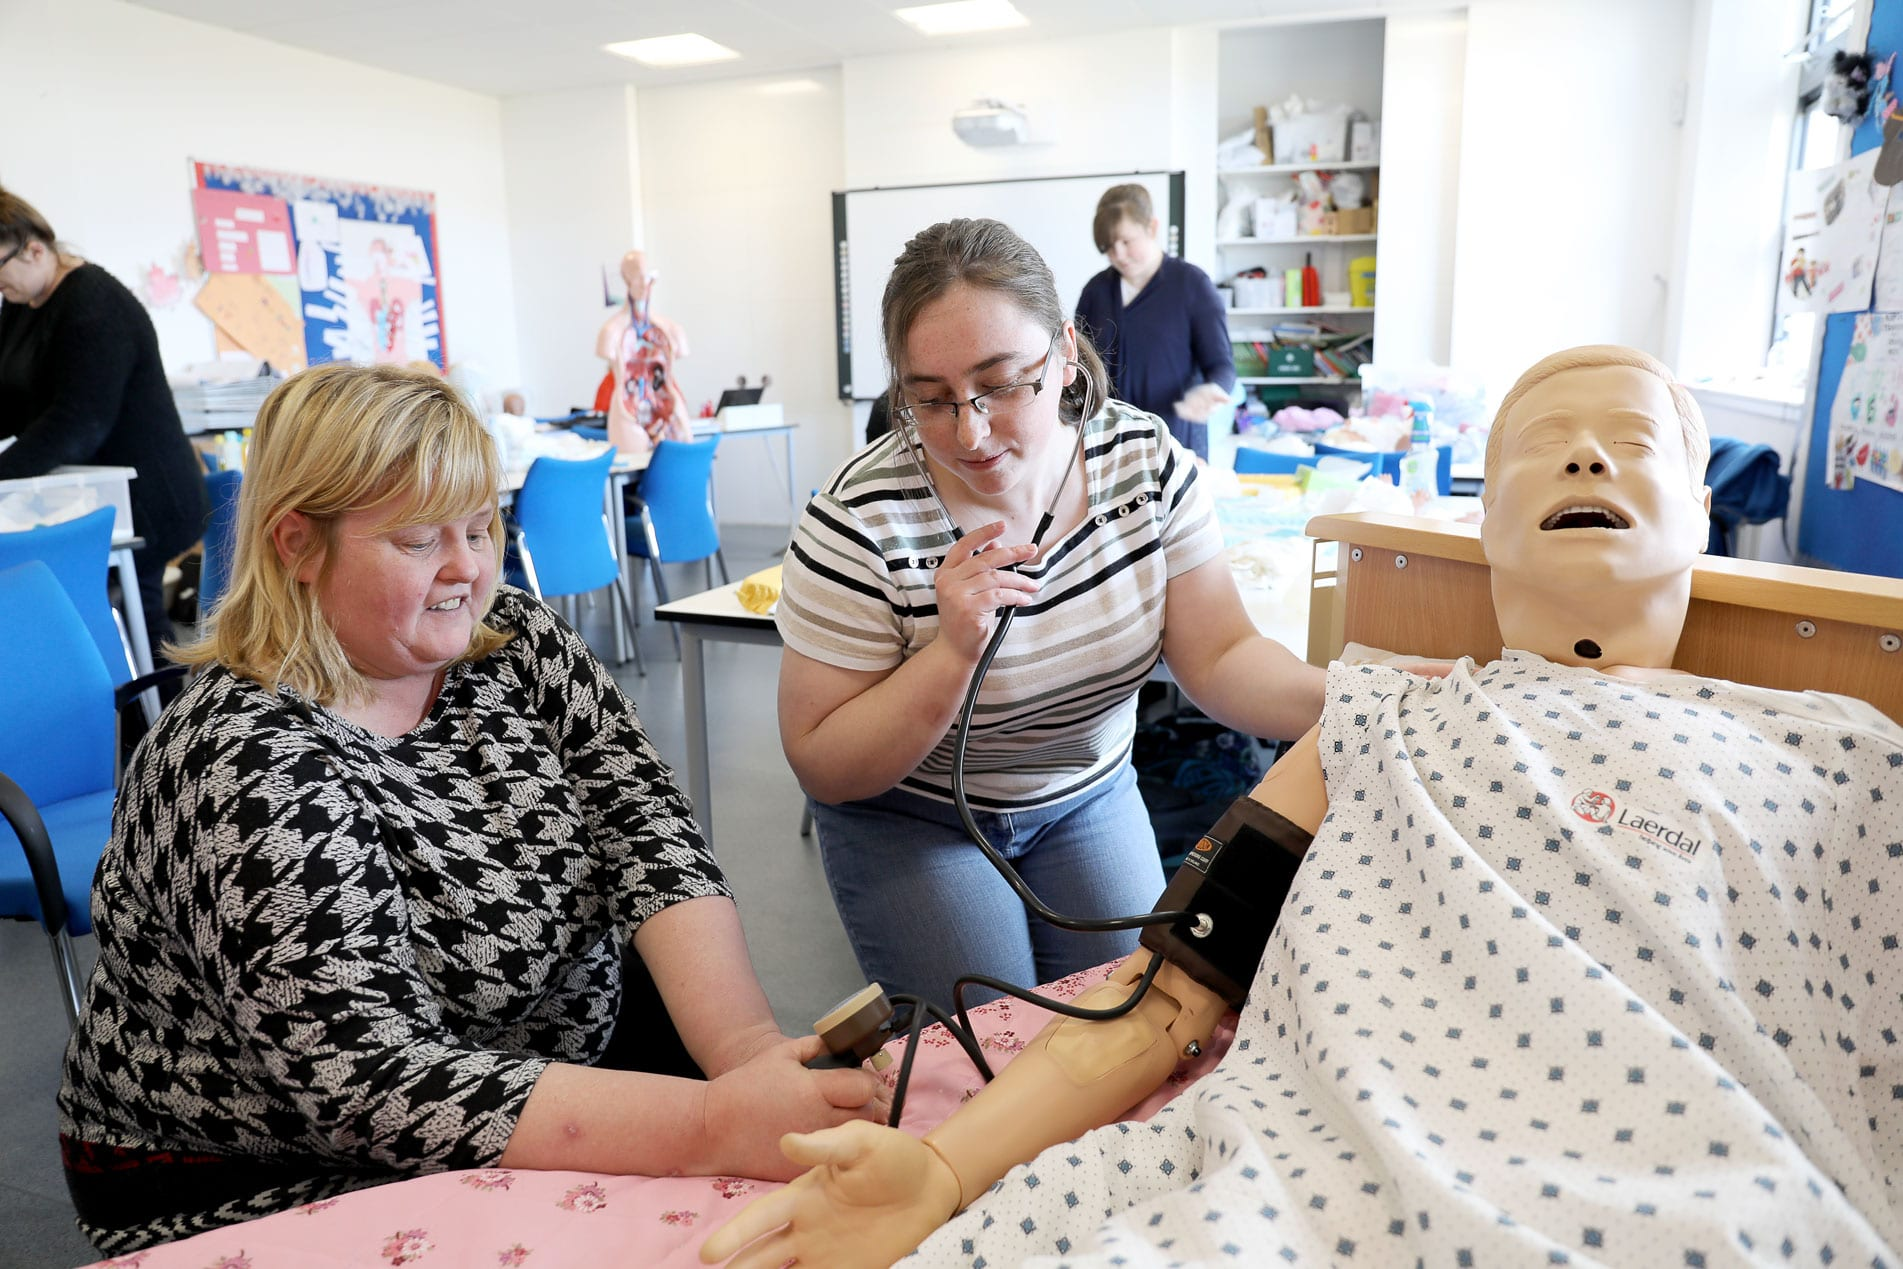 Care professions in the spotlight as frontline heroes provide inspiration to new recruits